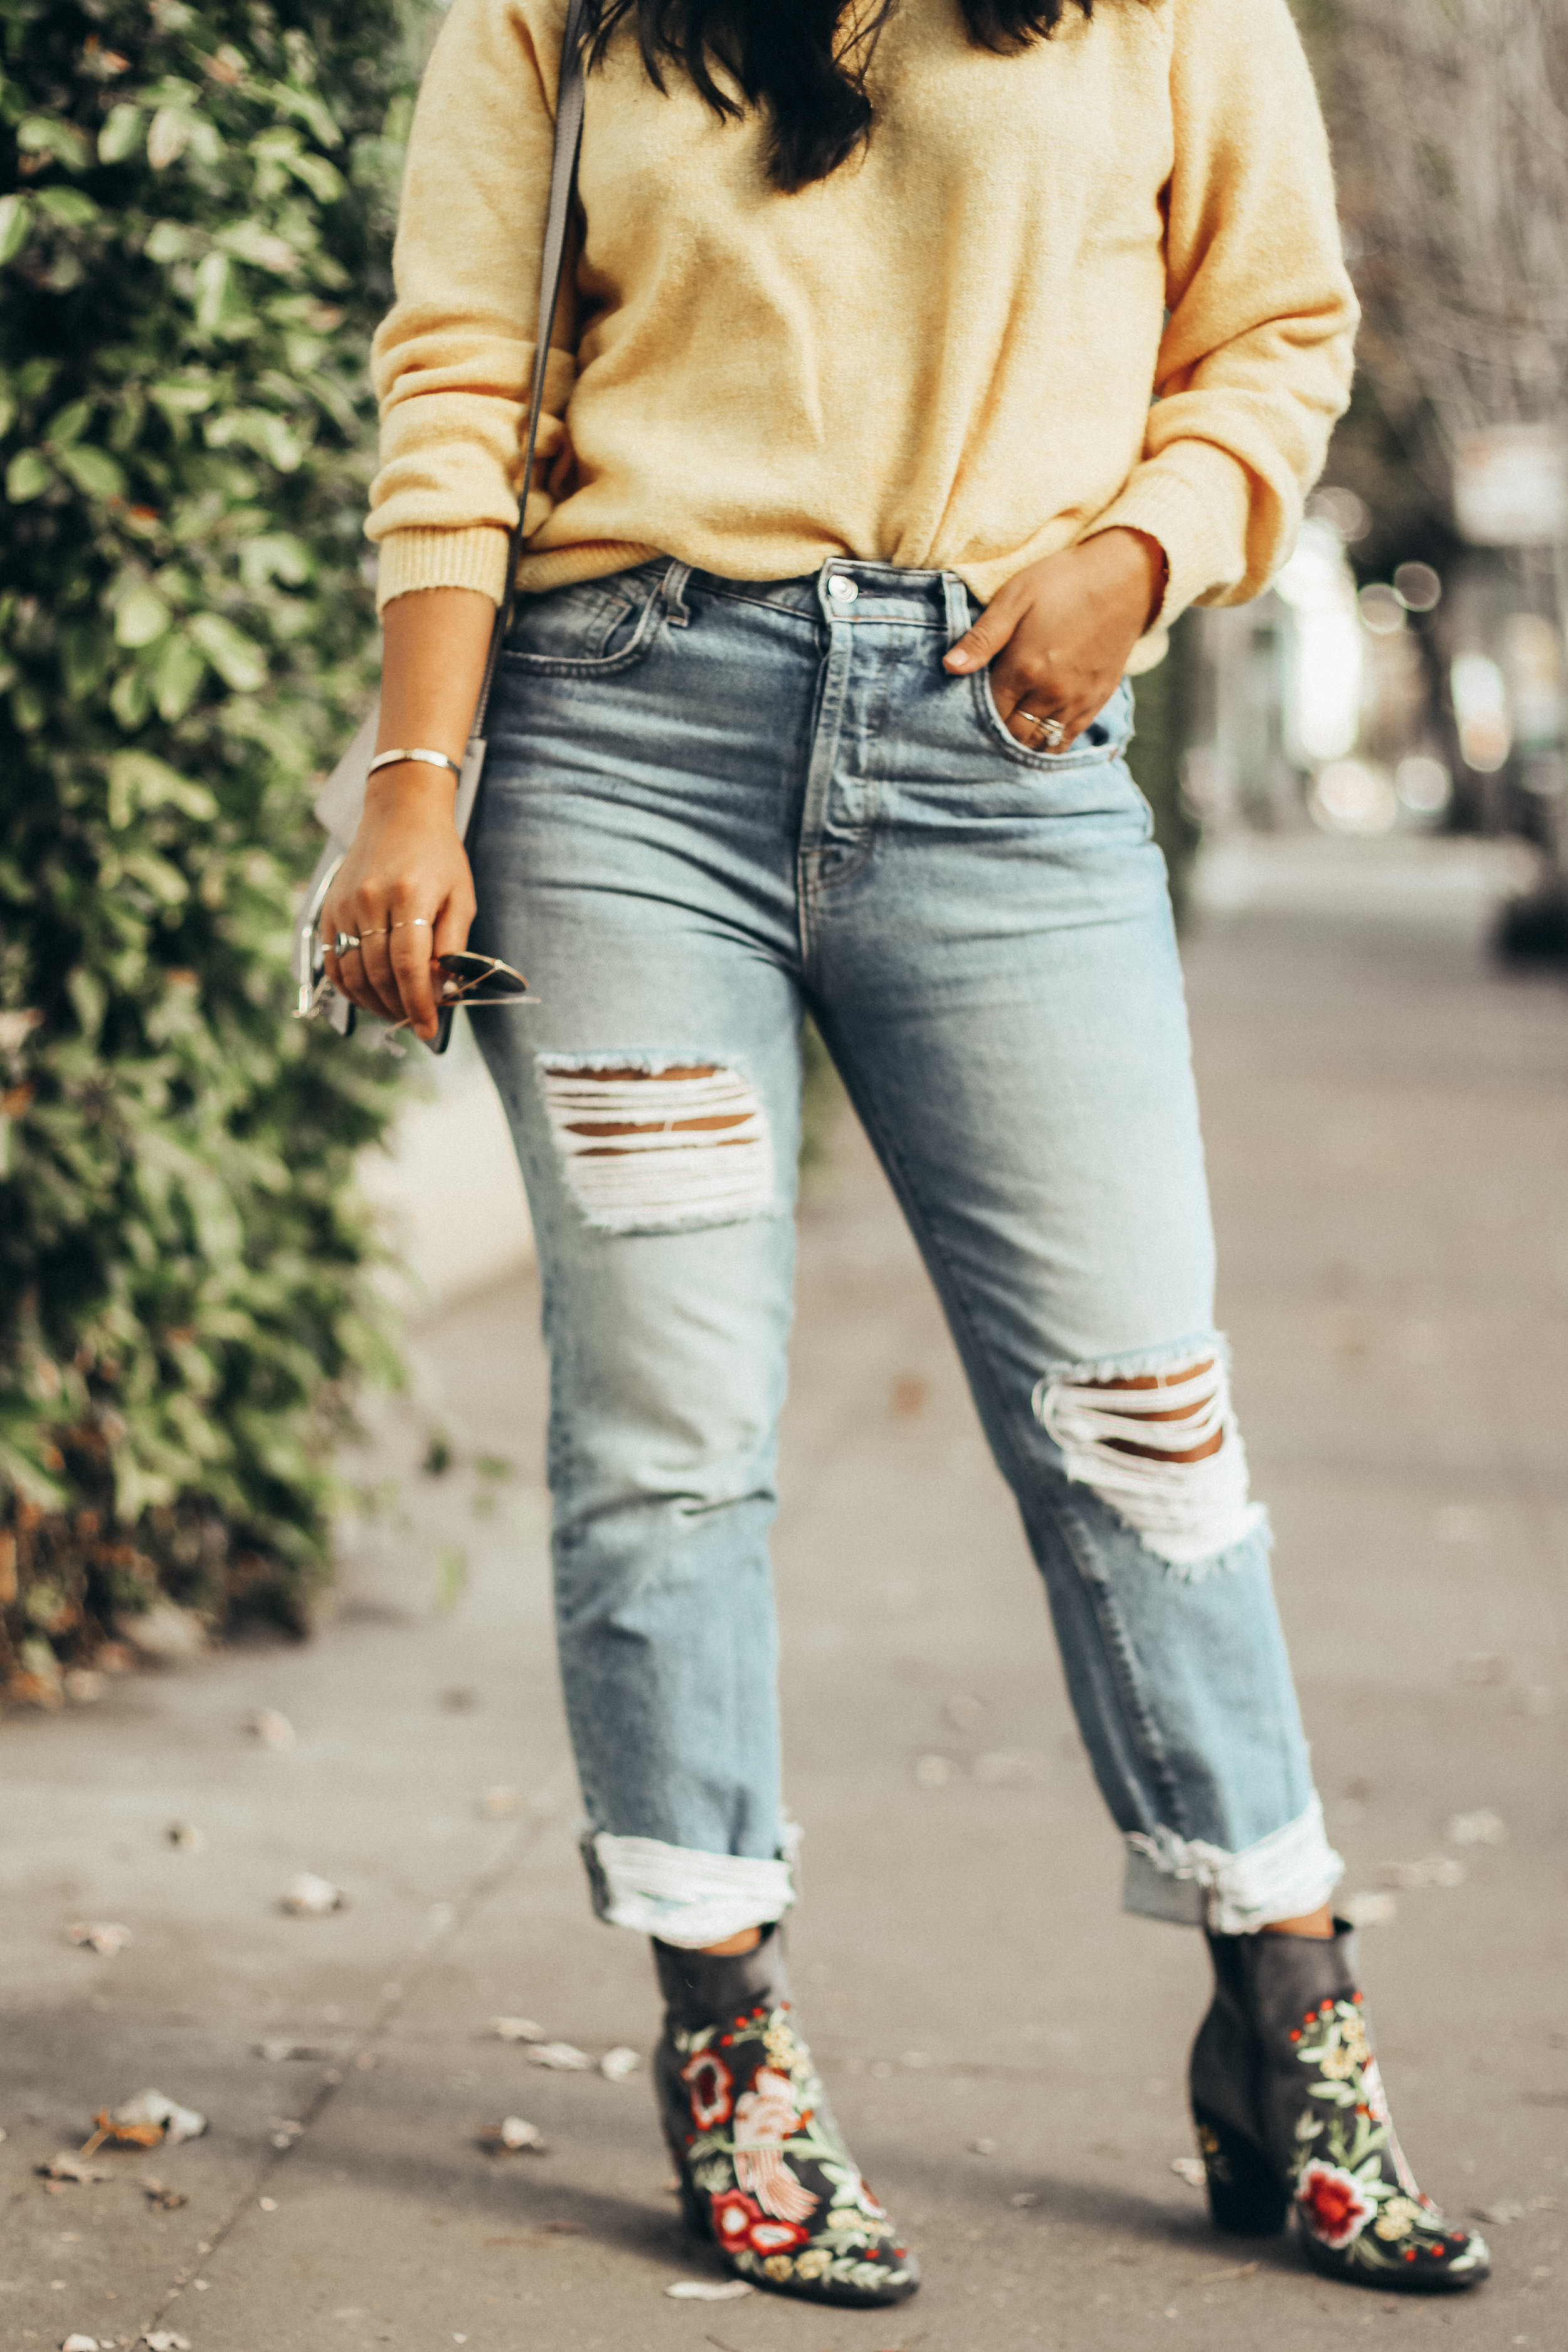 7-for-all-mankind-josefina-blogger-look